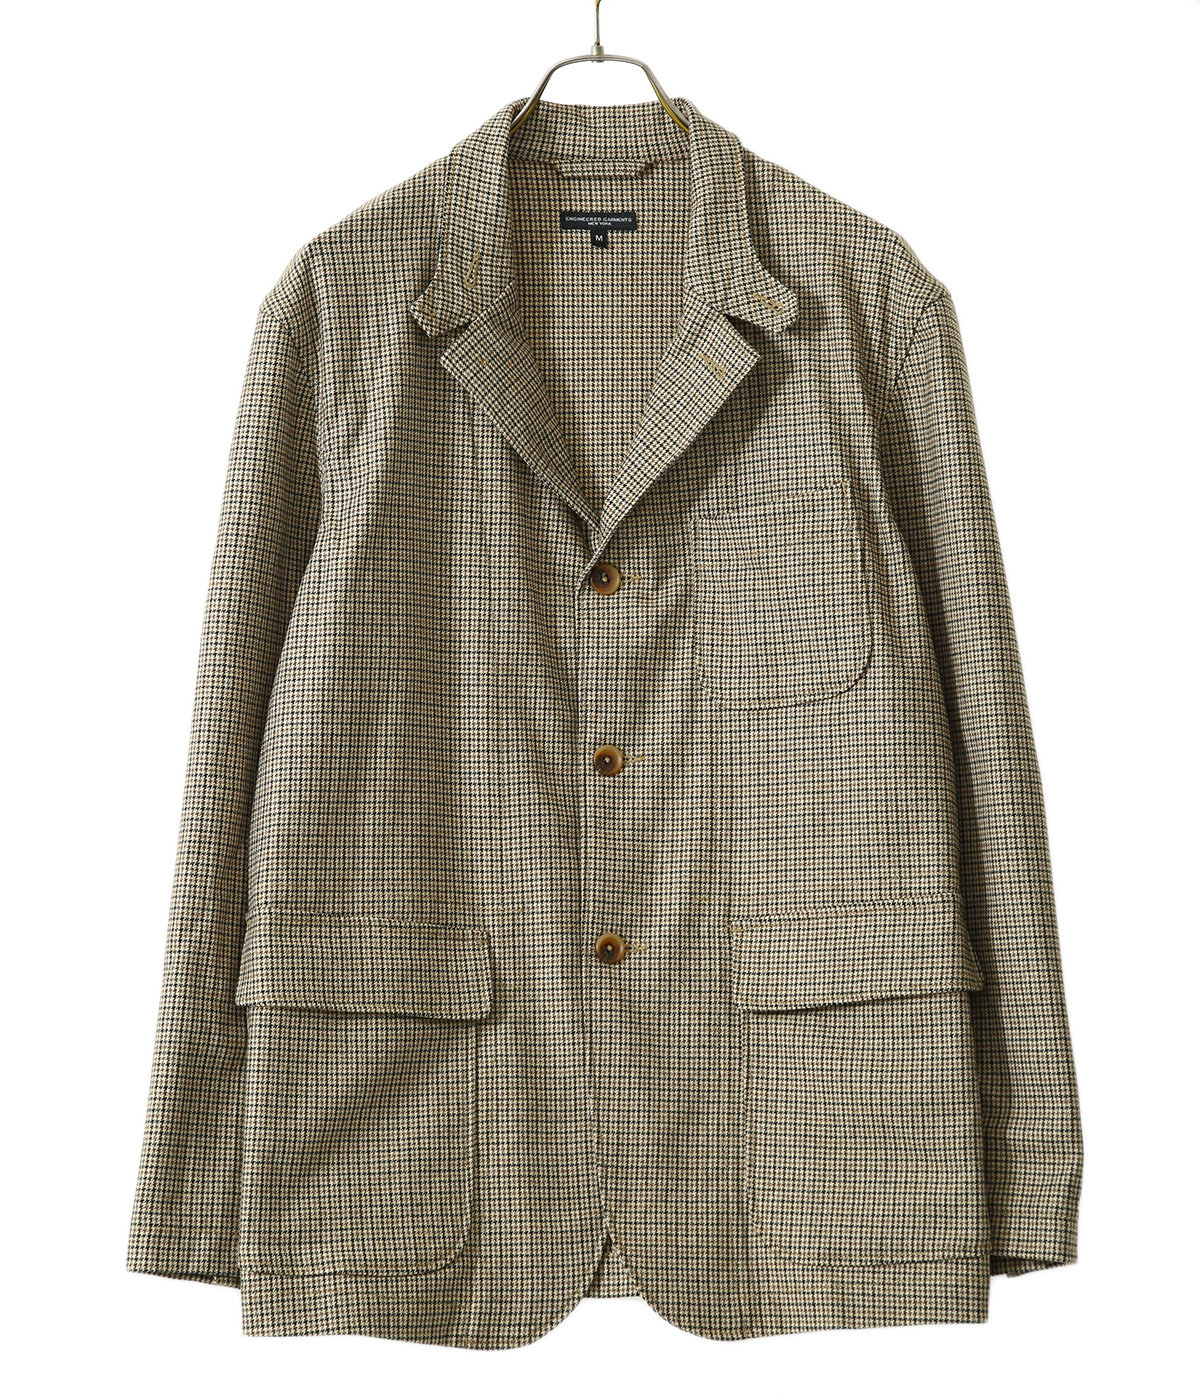 Loiter Jacket - Gunclub Check